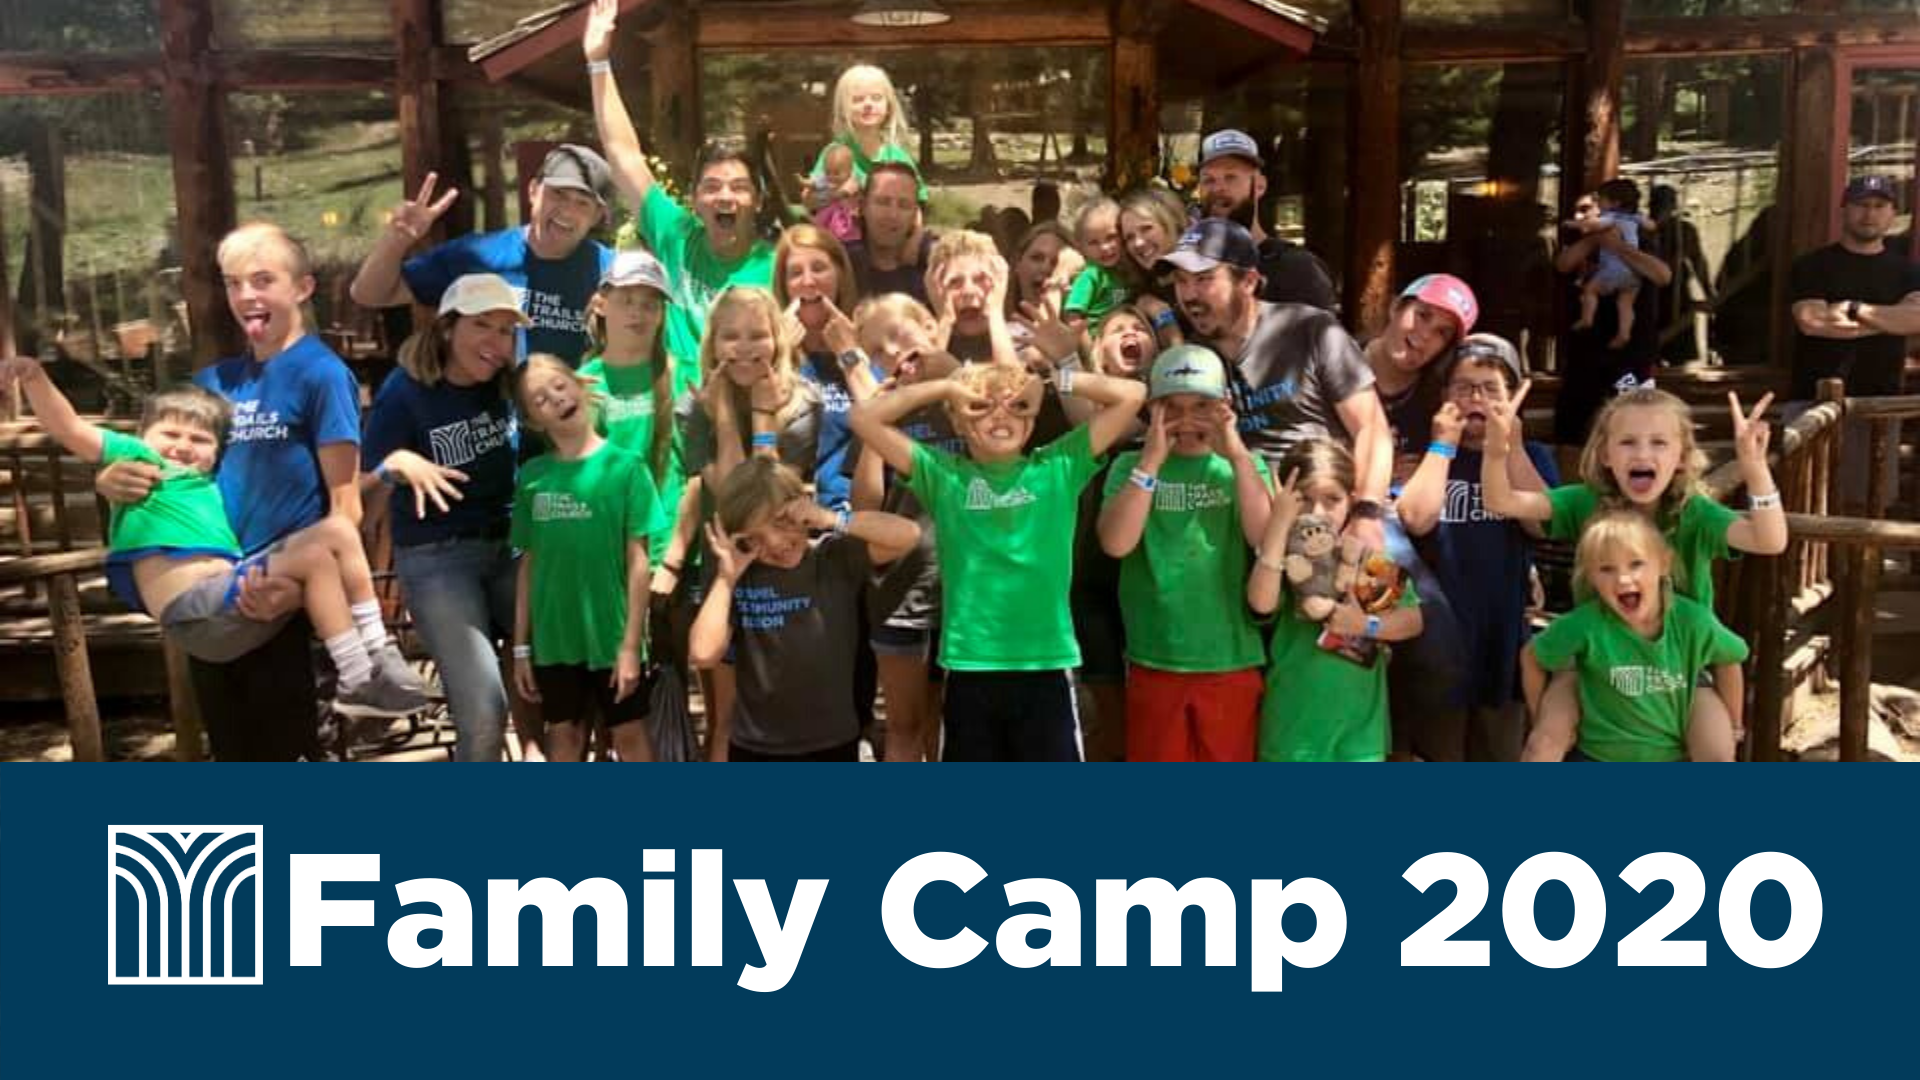 Family Camp 2020 image